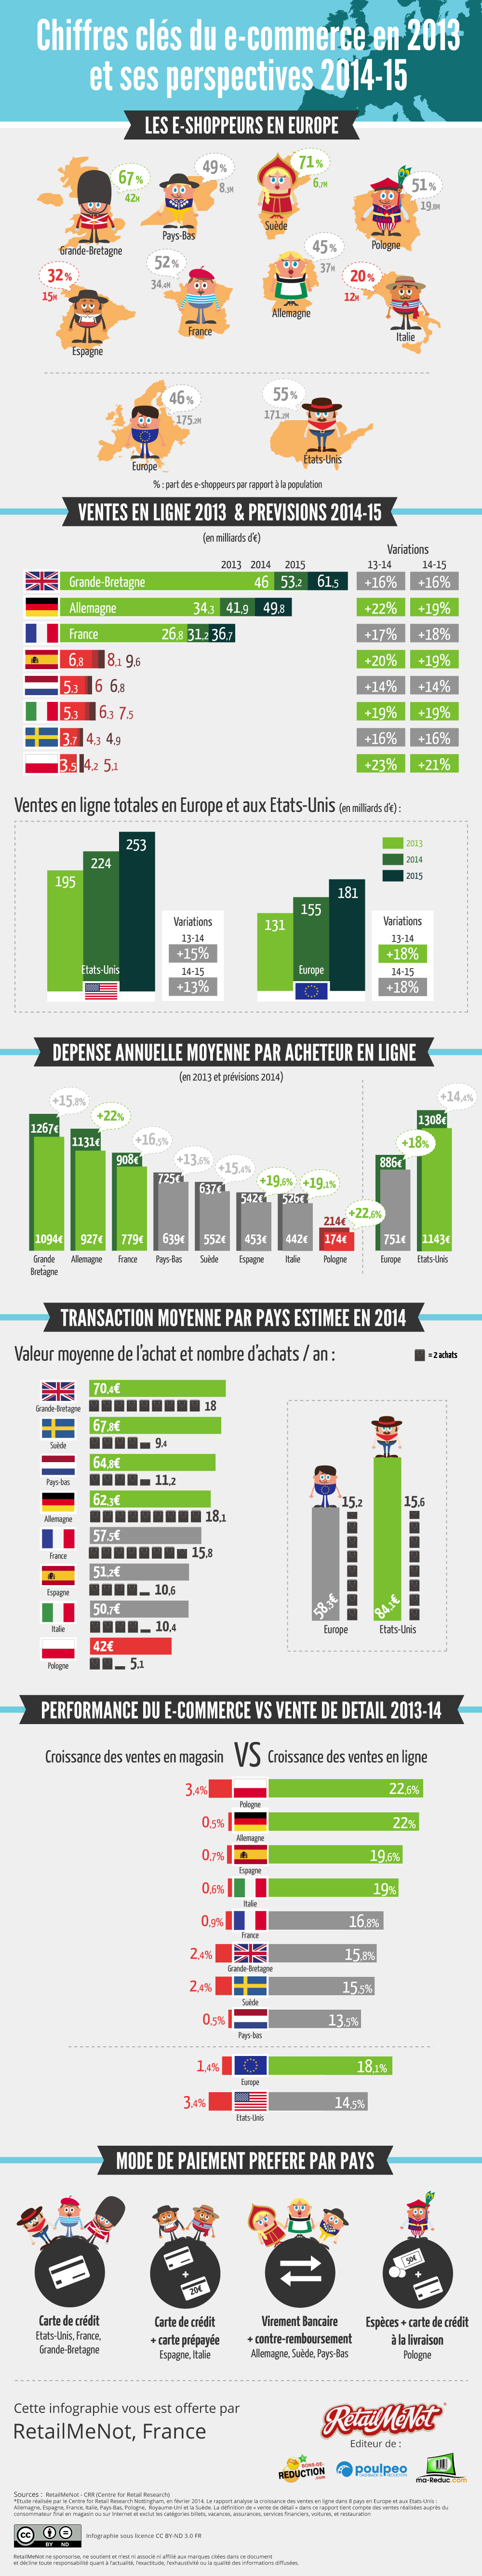 Infographic about ecommerce in Europe 2013, 2014, 2015 statistics